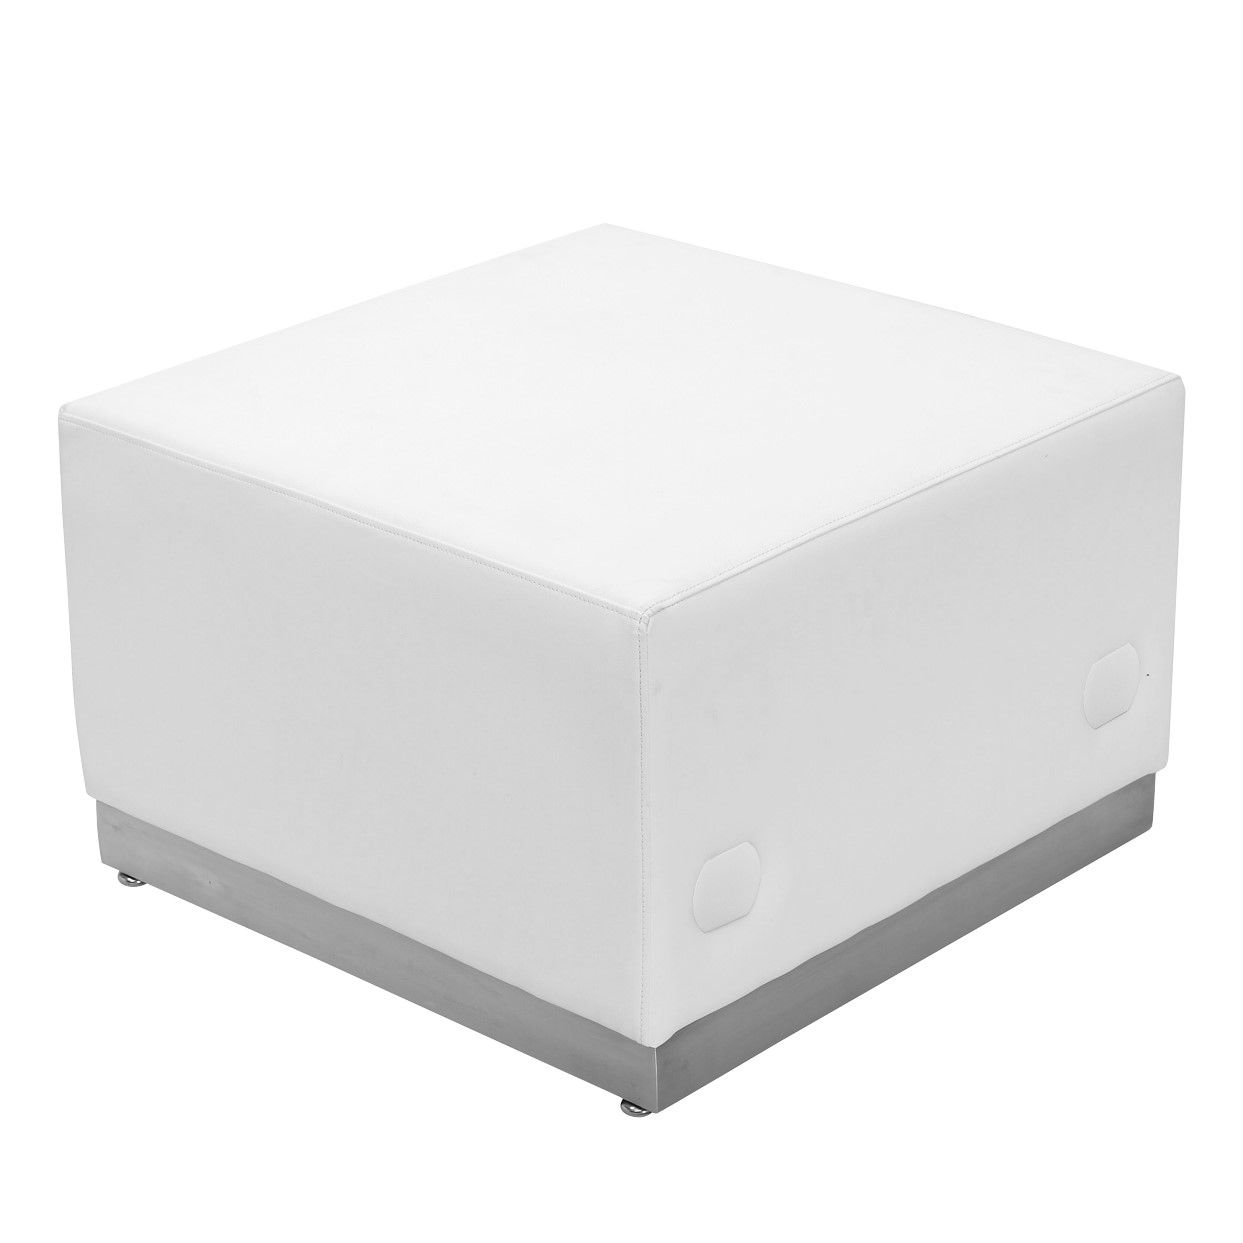 TOUGH ENOUGH Alon Series Melrose White LeatherSoft Ottoman with Brushed Stainless Steel Base